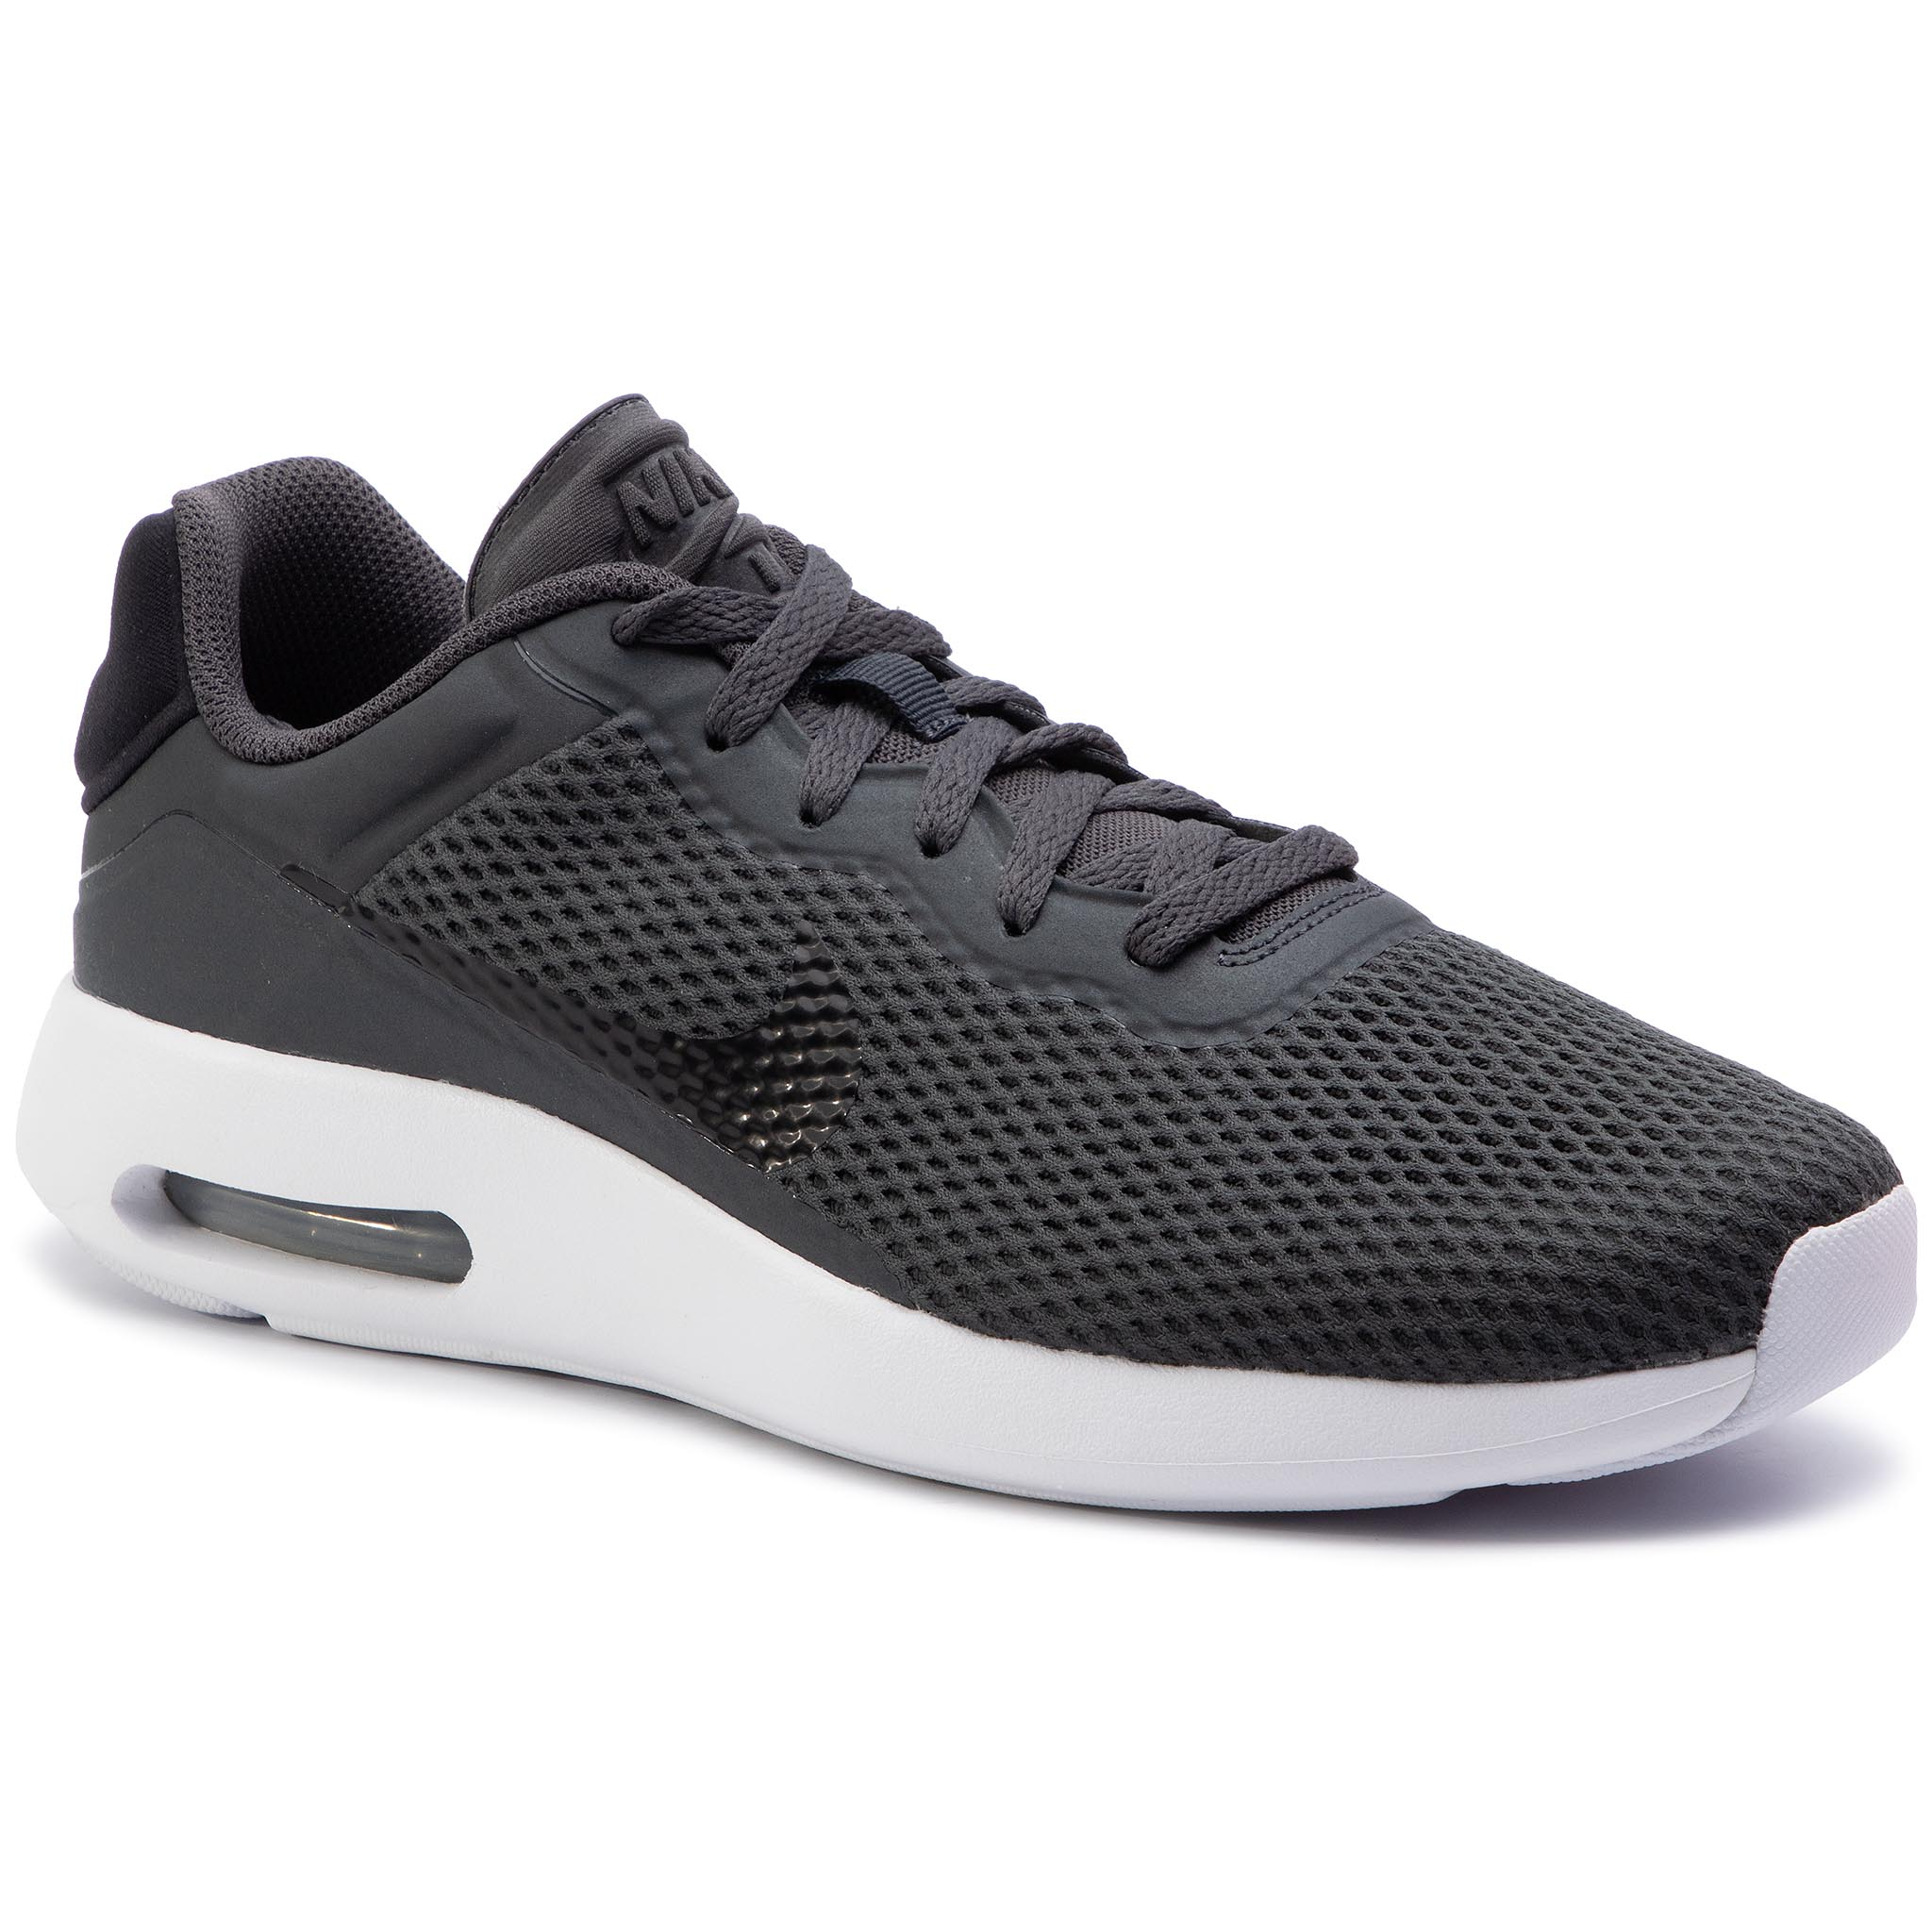 Topánky NIKE - Air Max Modern Essential 844874 013 Anthracite/Black/White